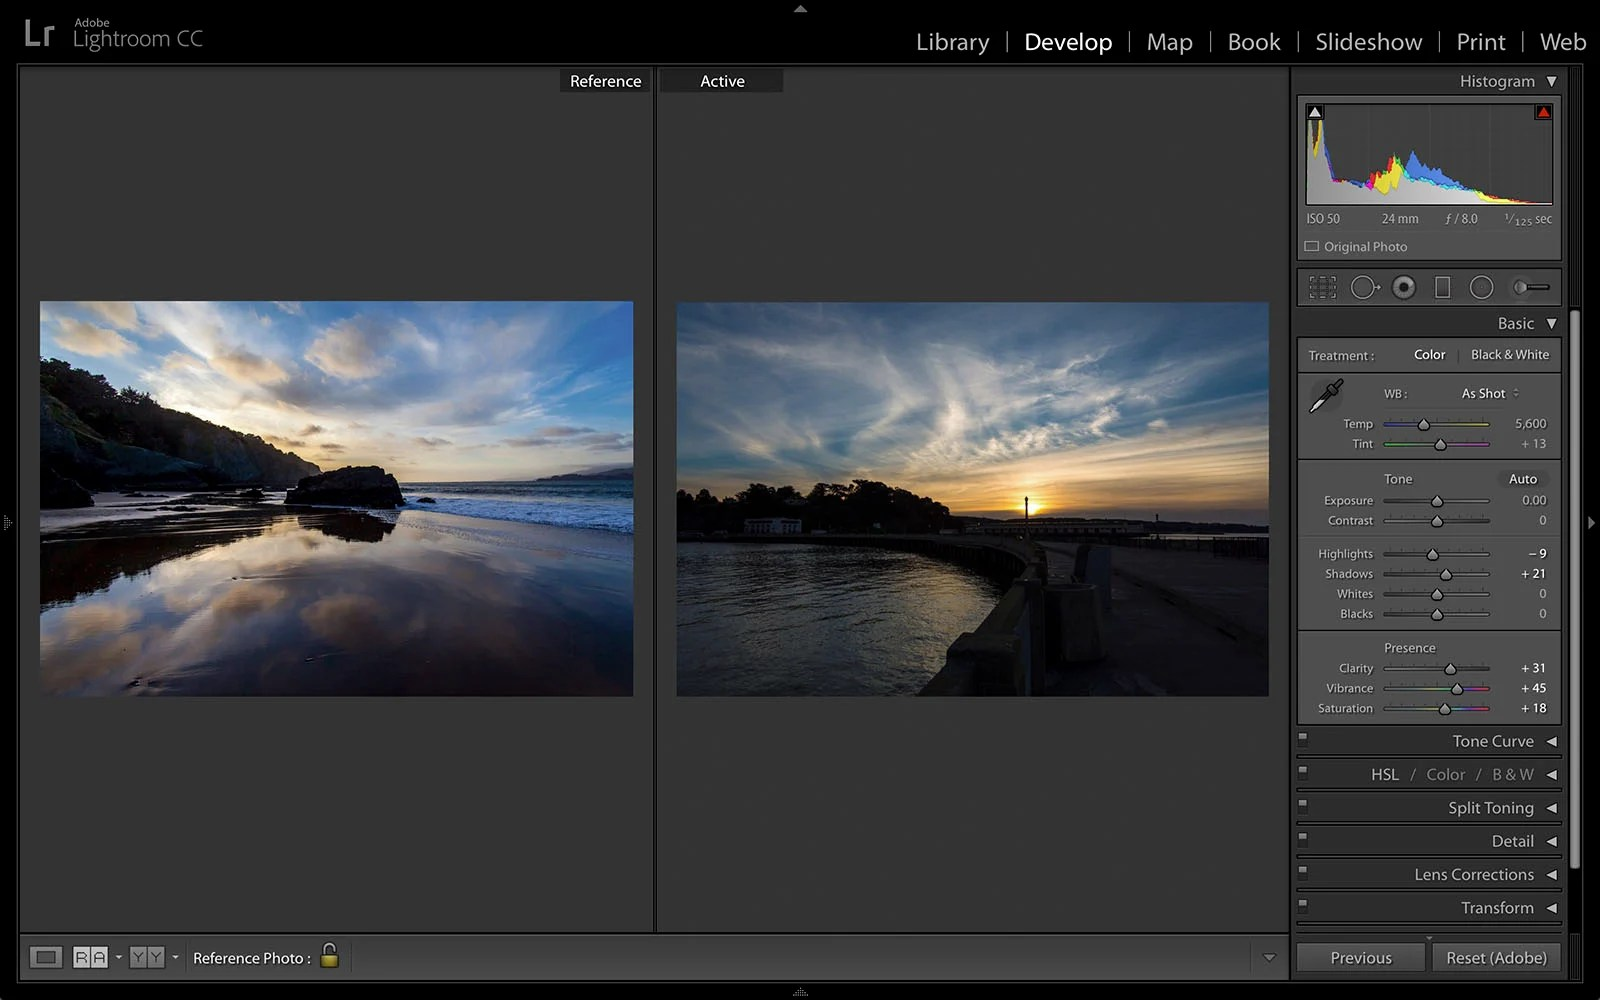 Lightroom Gets New Reference View for Comparing Photos